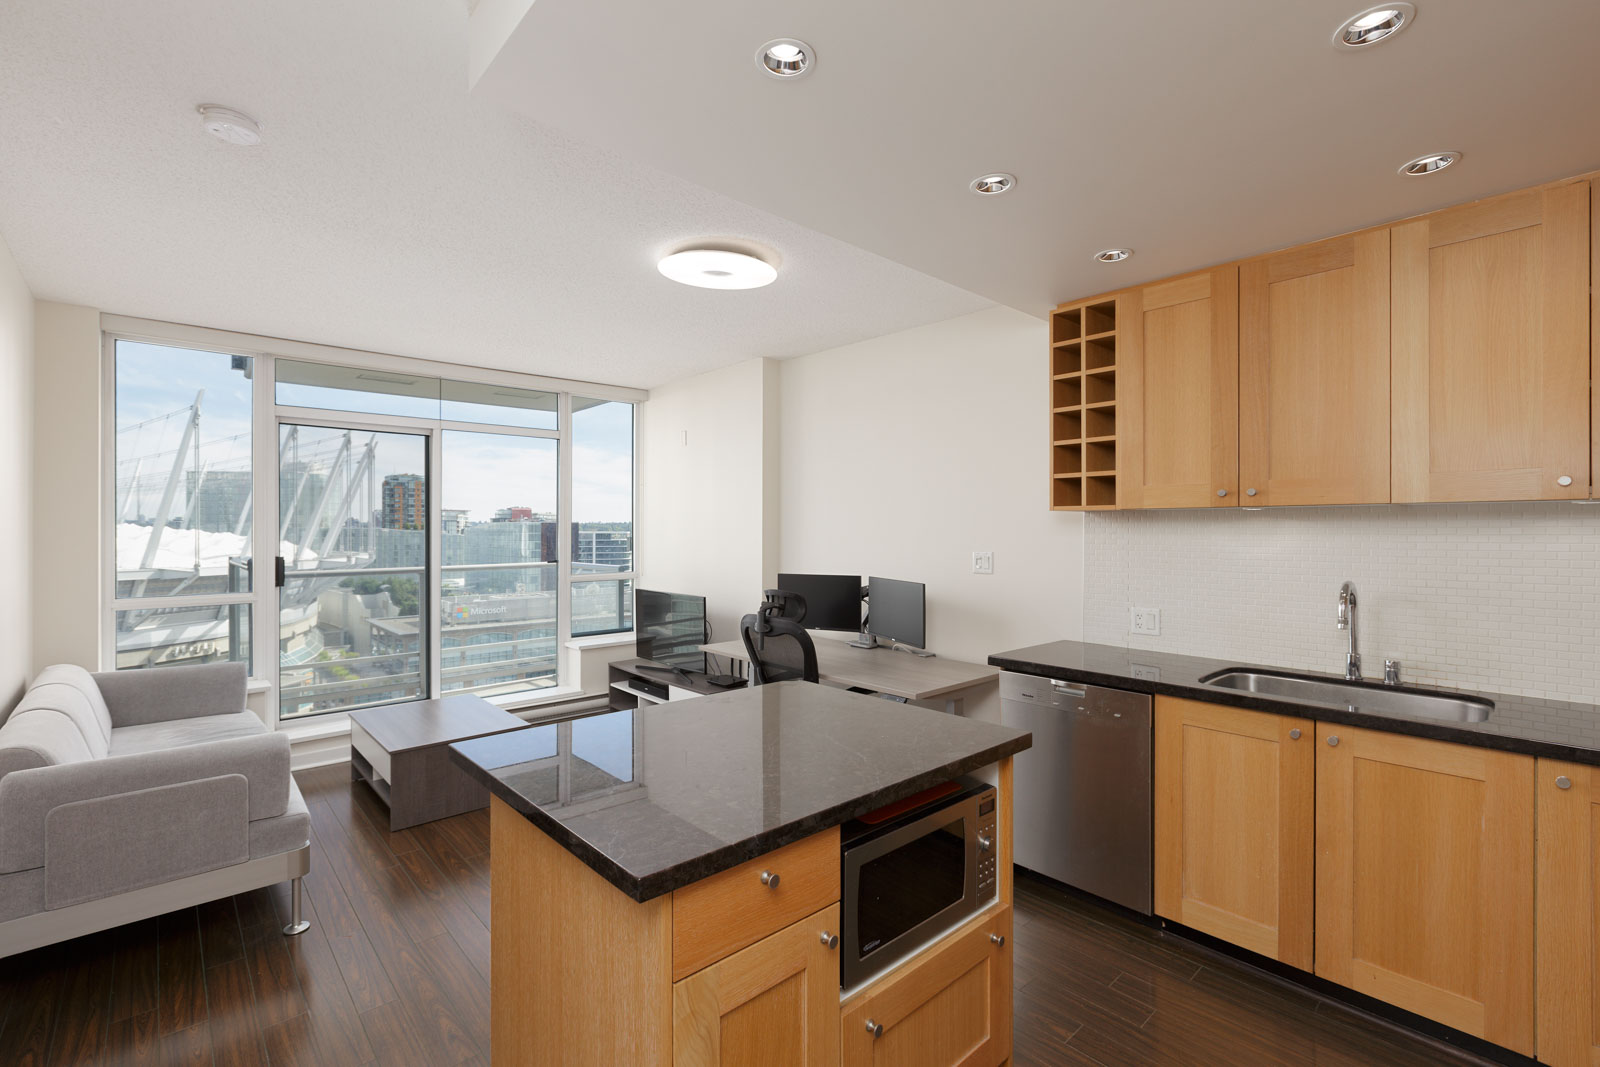 View of kitchen and dining room inside upscale Yaletown condo